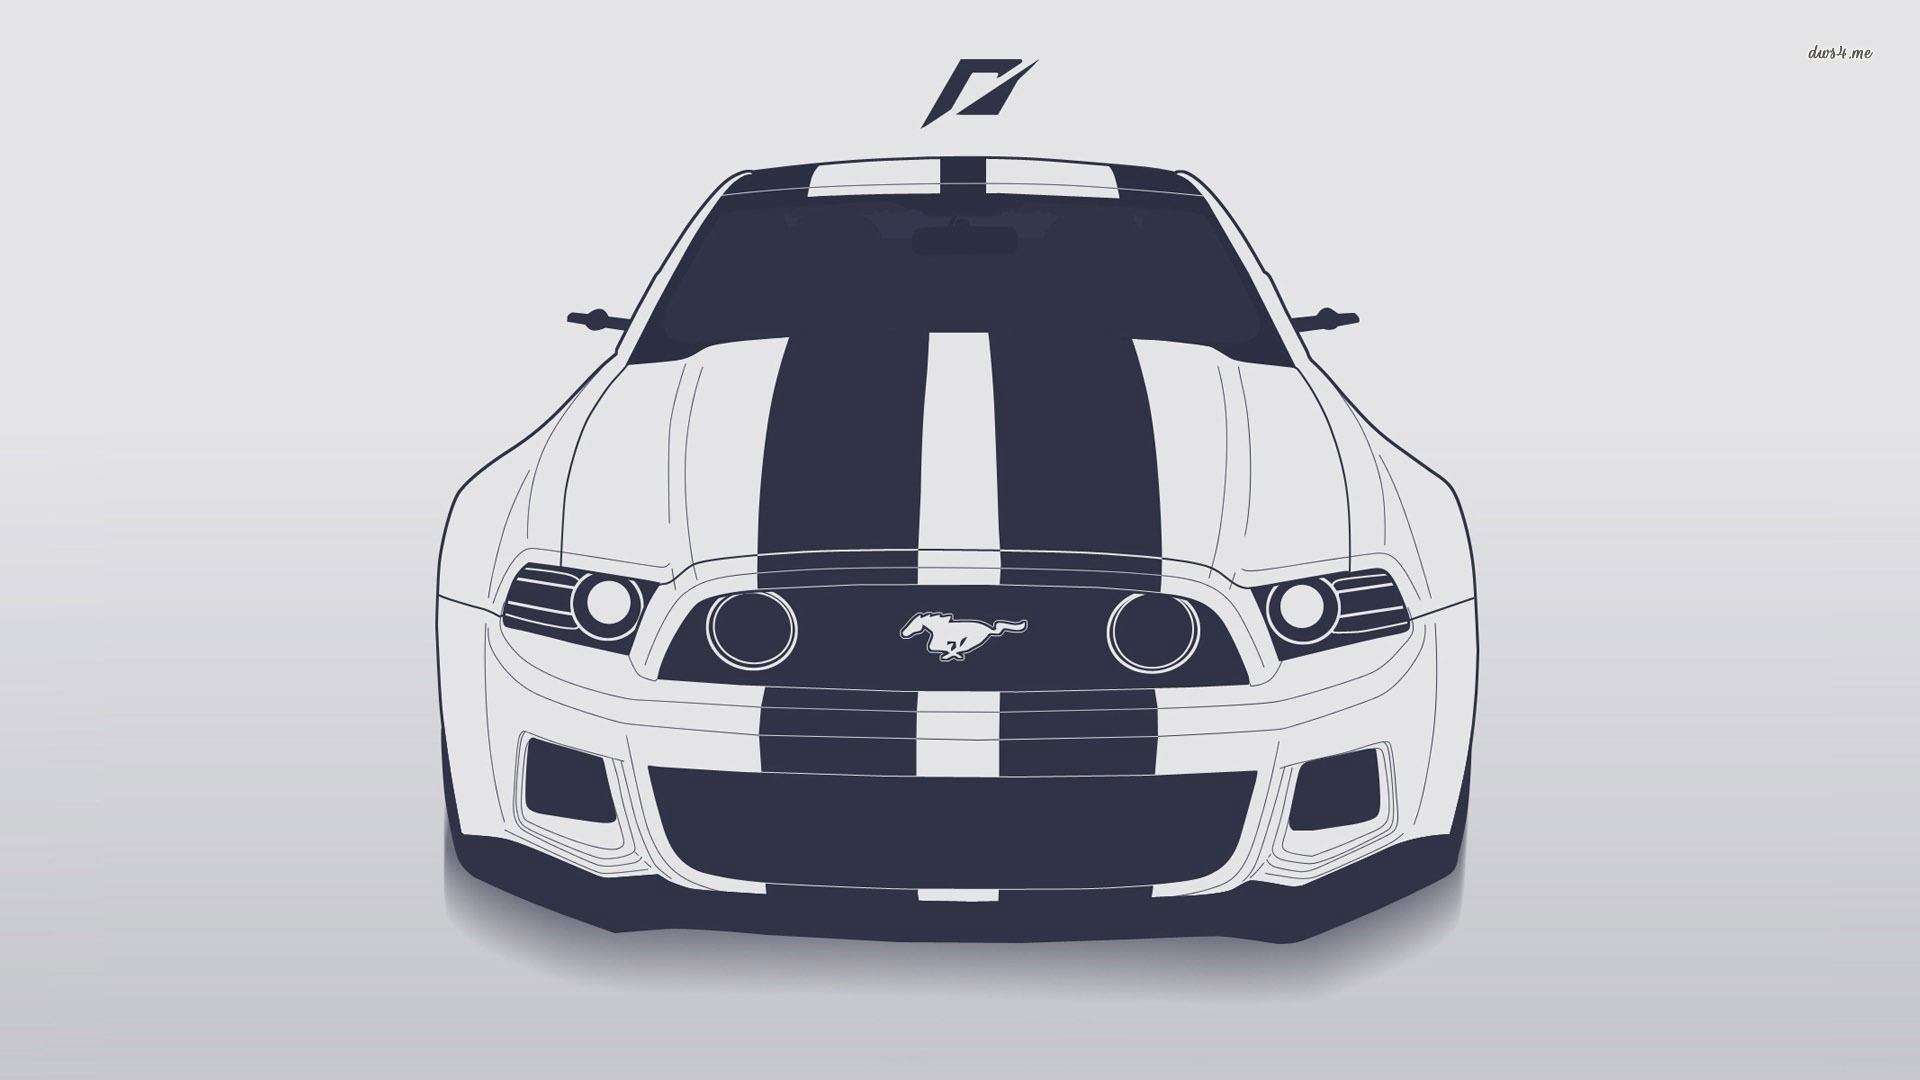 1920x1080 Ford Mustang Vector, Hd Cars, 4k Wallpapers, Images, Backgrounds